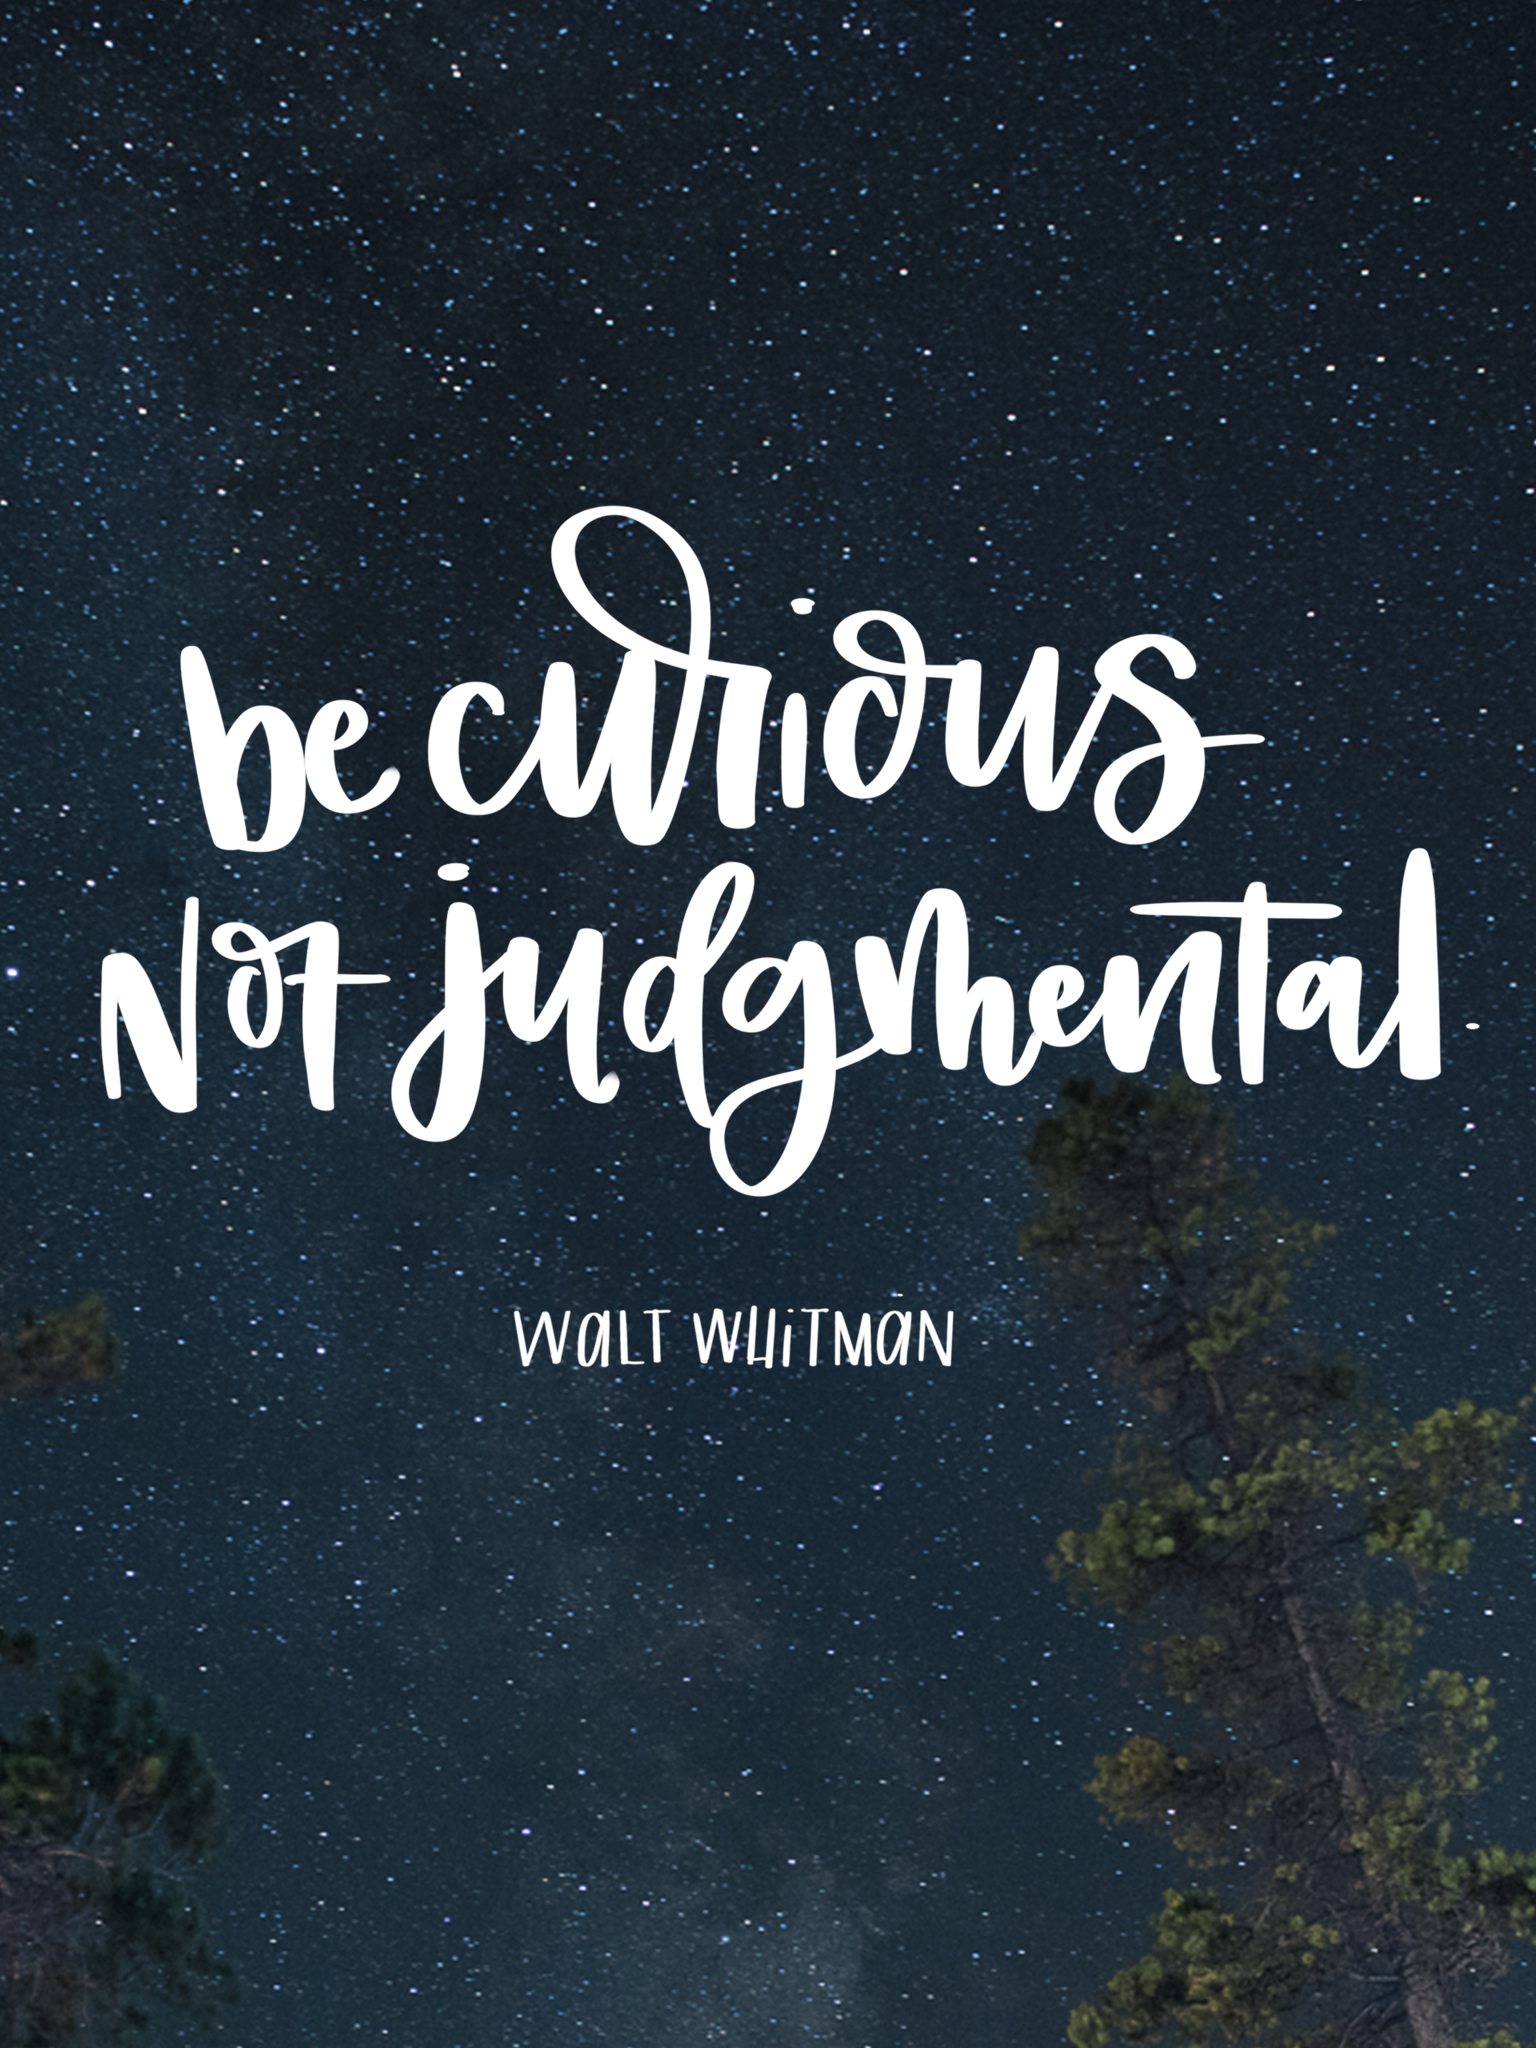 Quote Wallpaper Hd Phone Be Curious Not Judgmental November Tech Wallpapers